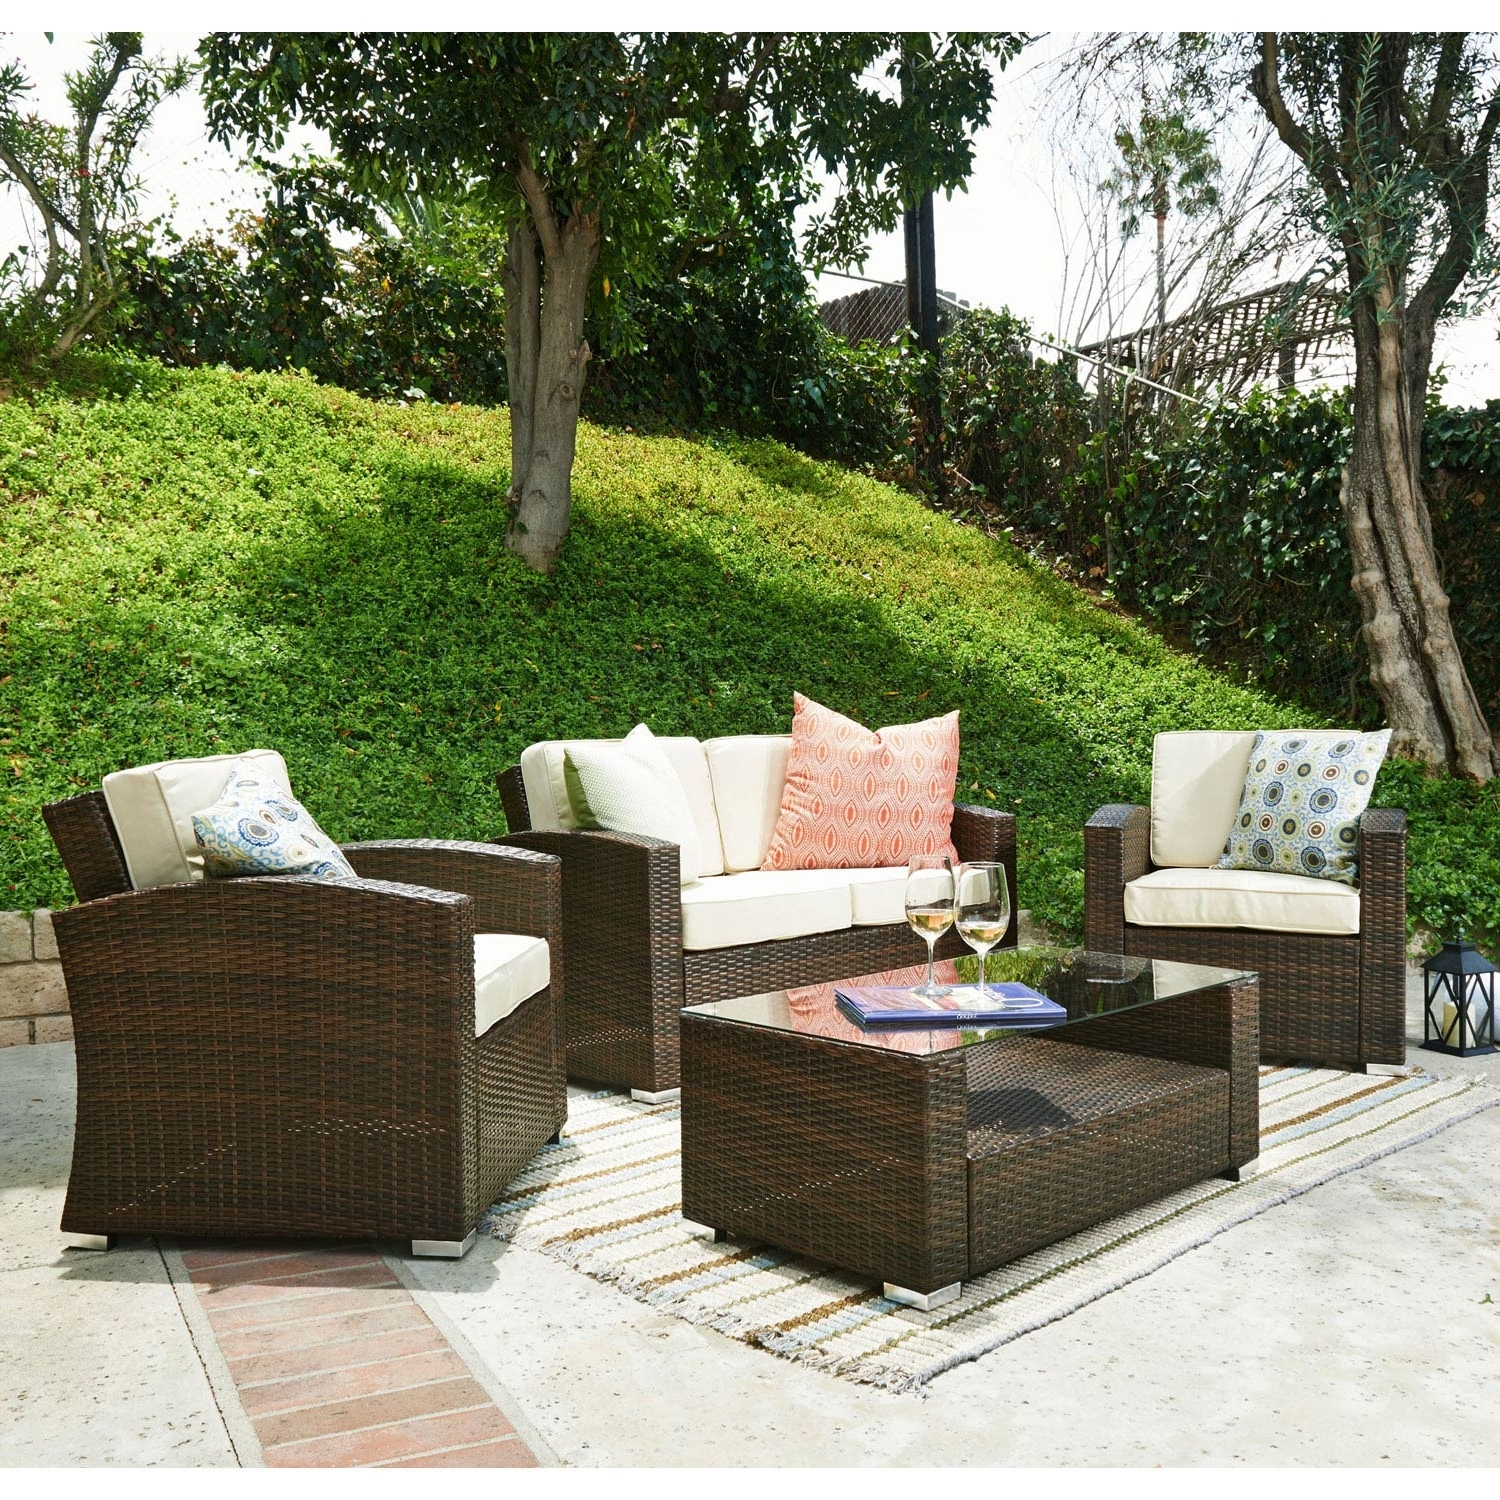 30 Amazing Patio Furniture Conversation Set Ideas within Most Current Outdoor Patio Furniture Conversation Sets